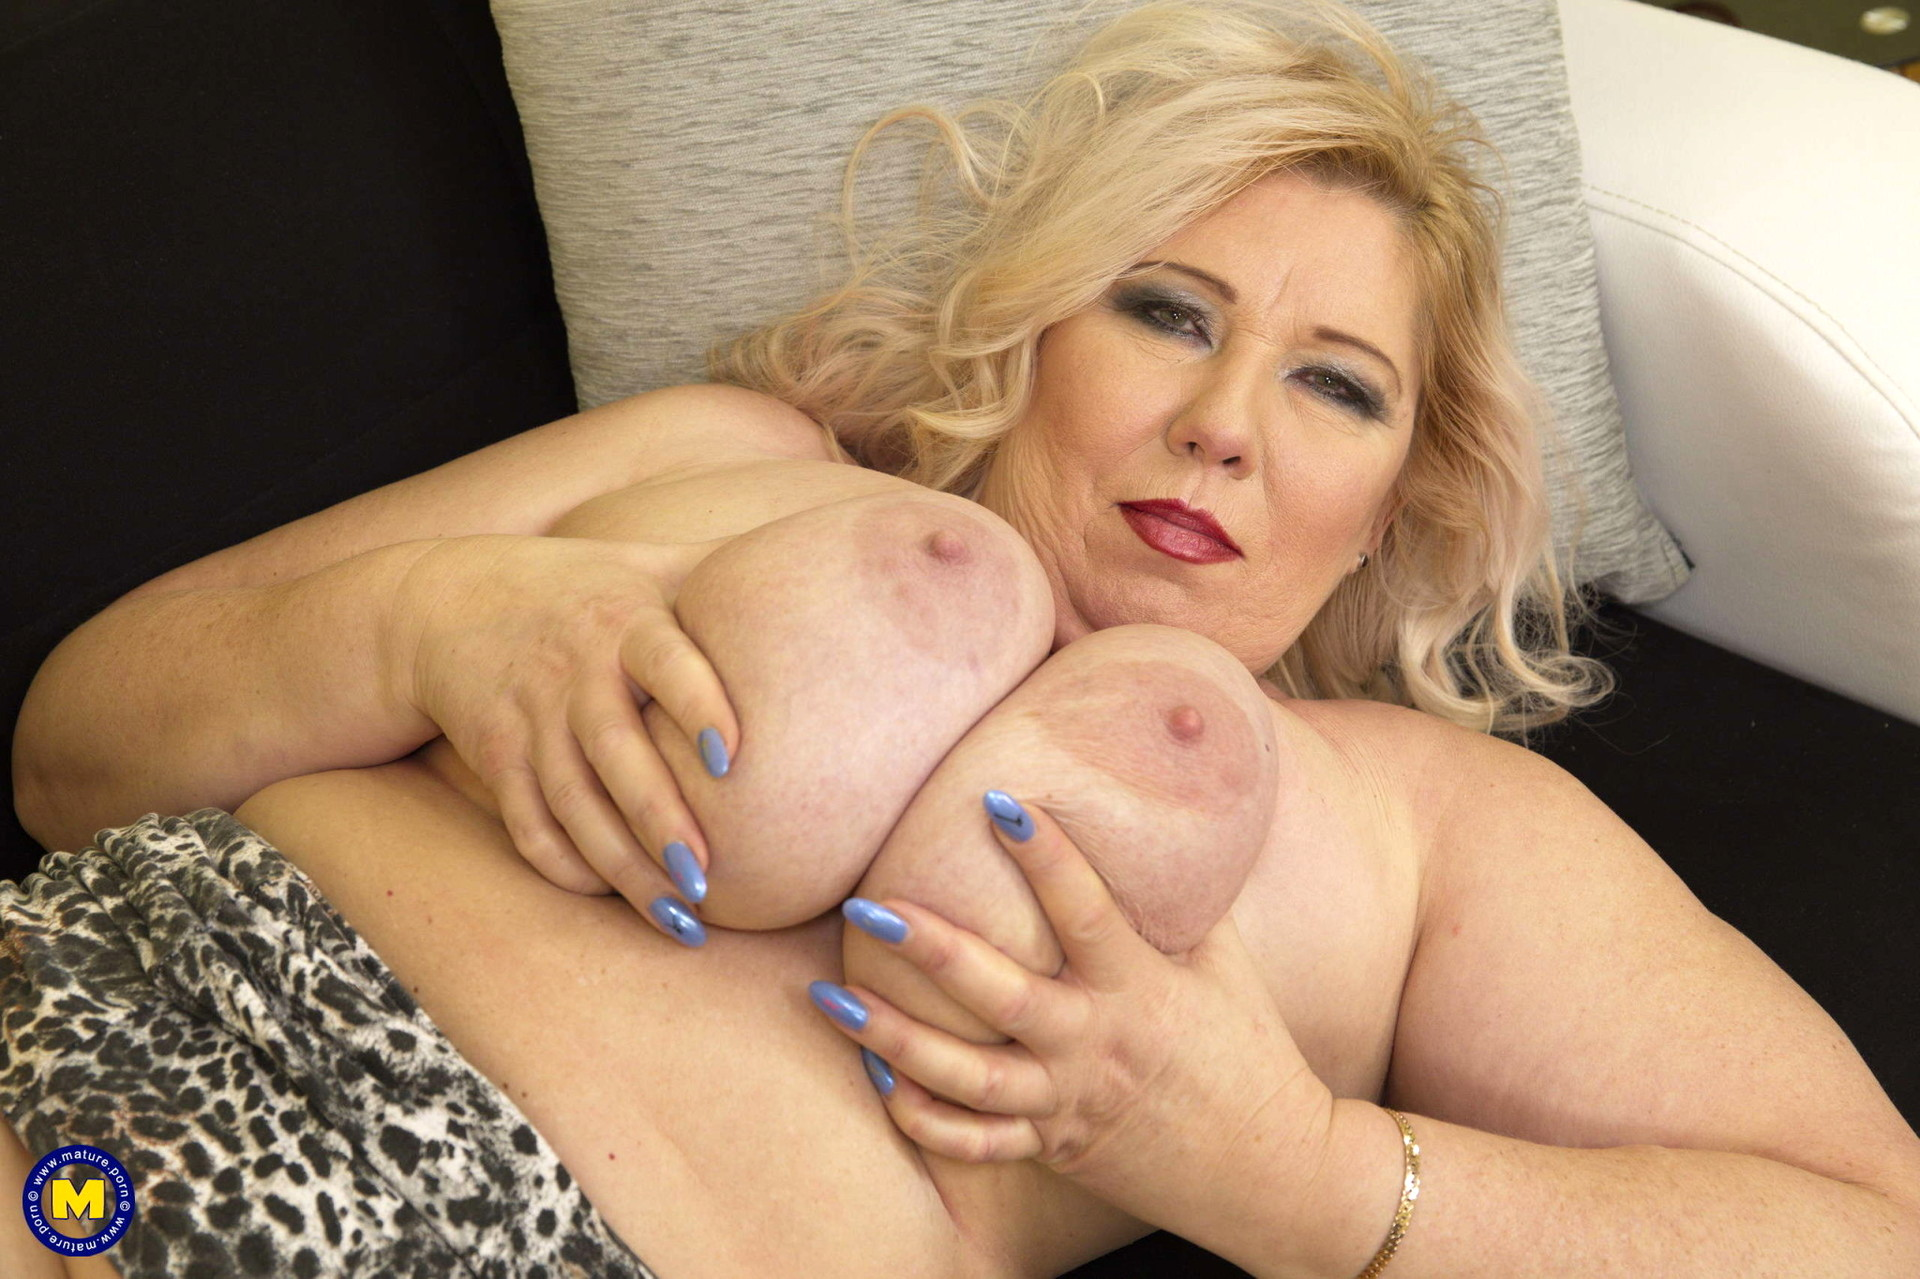 Babe Today Mature Nl Maturenl Model Nice Solo Archive Porn -6401